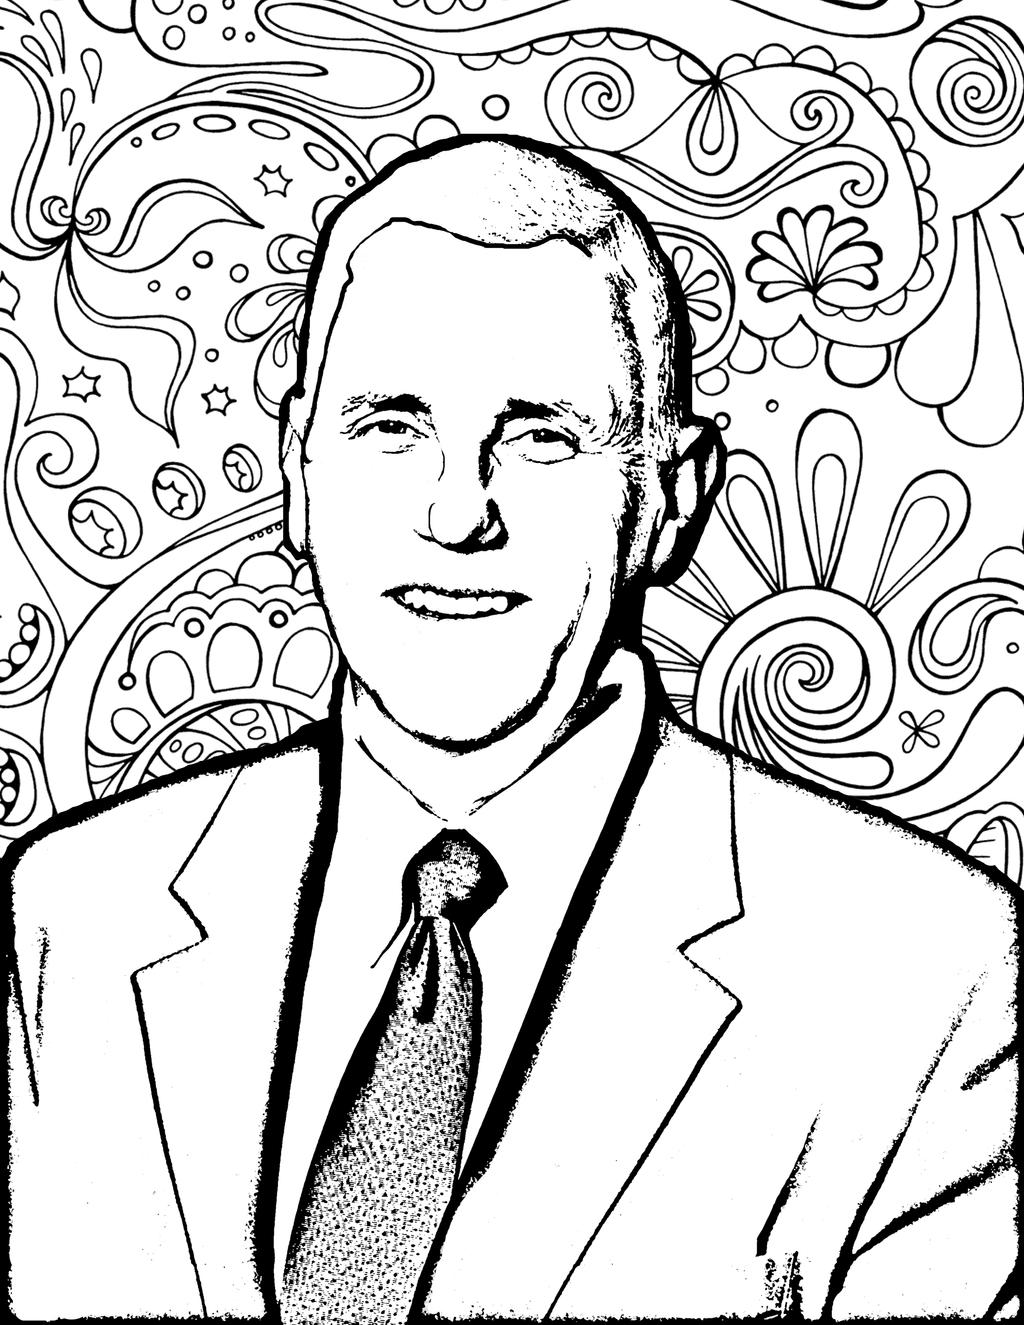 mikes restaurant coloring pages - photo#31